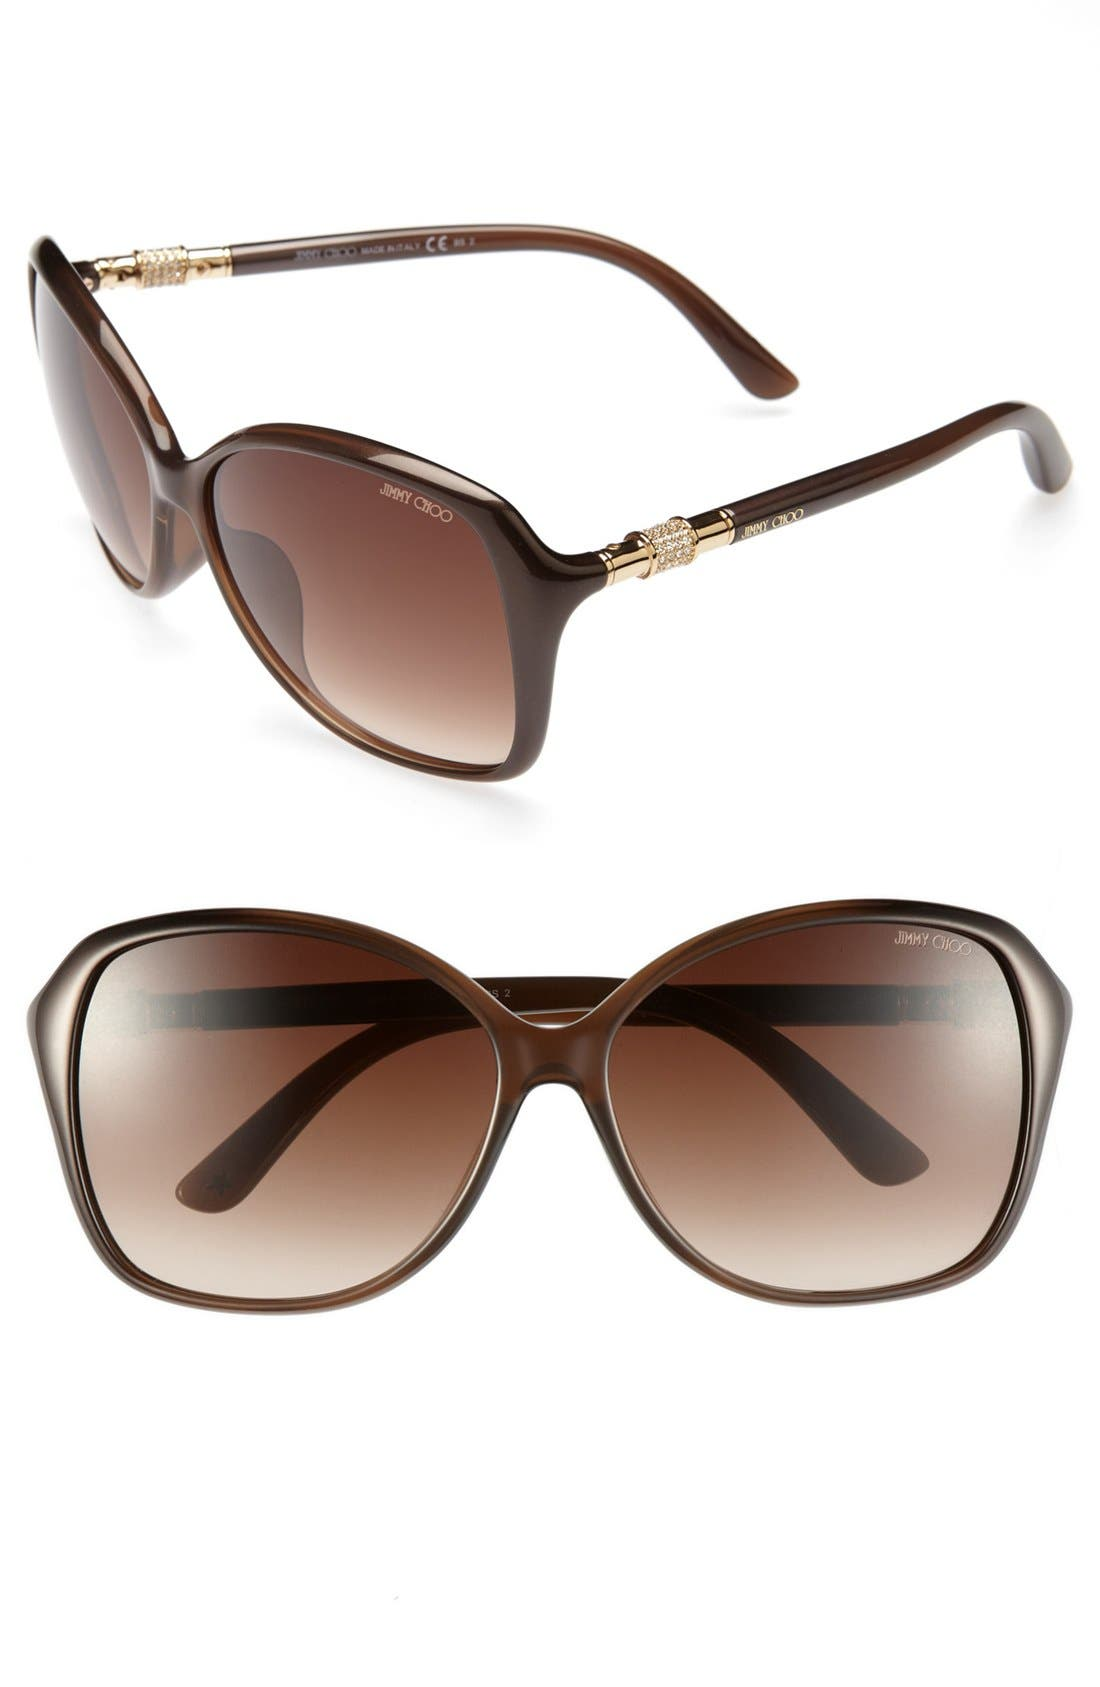 Main Image - Jimmy Choo 60mm Sunglasses